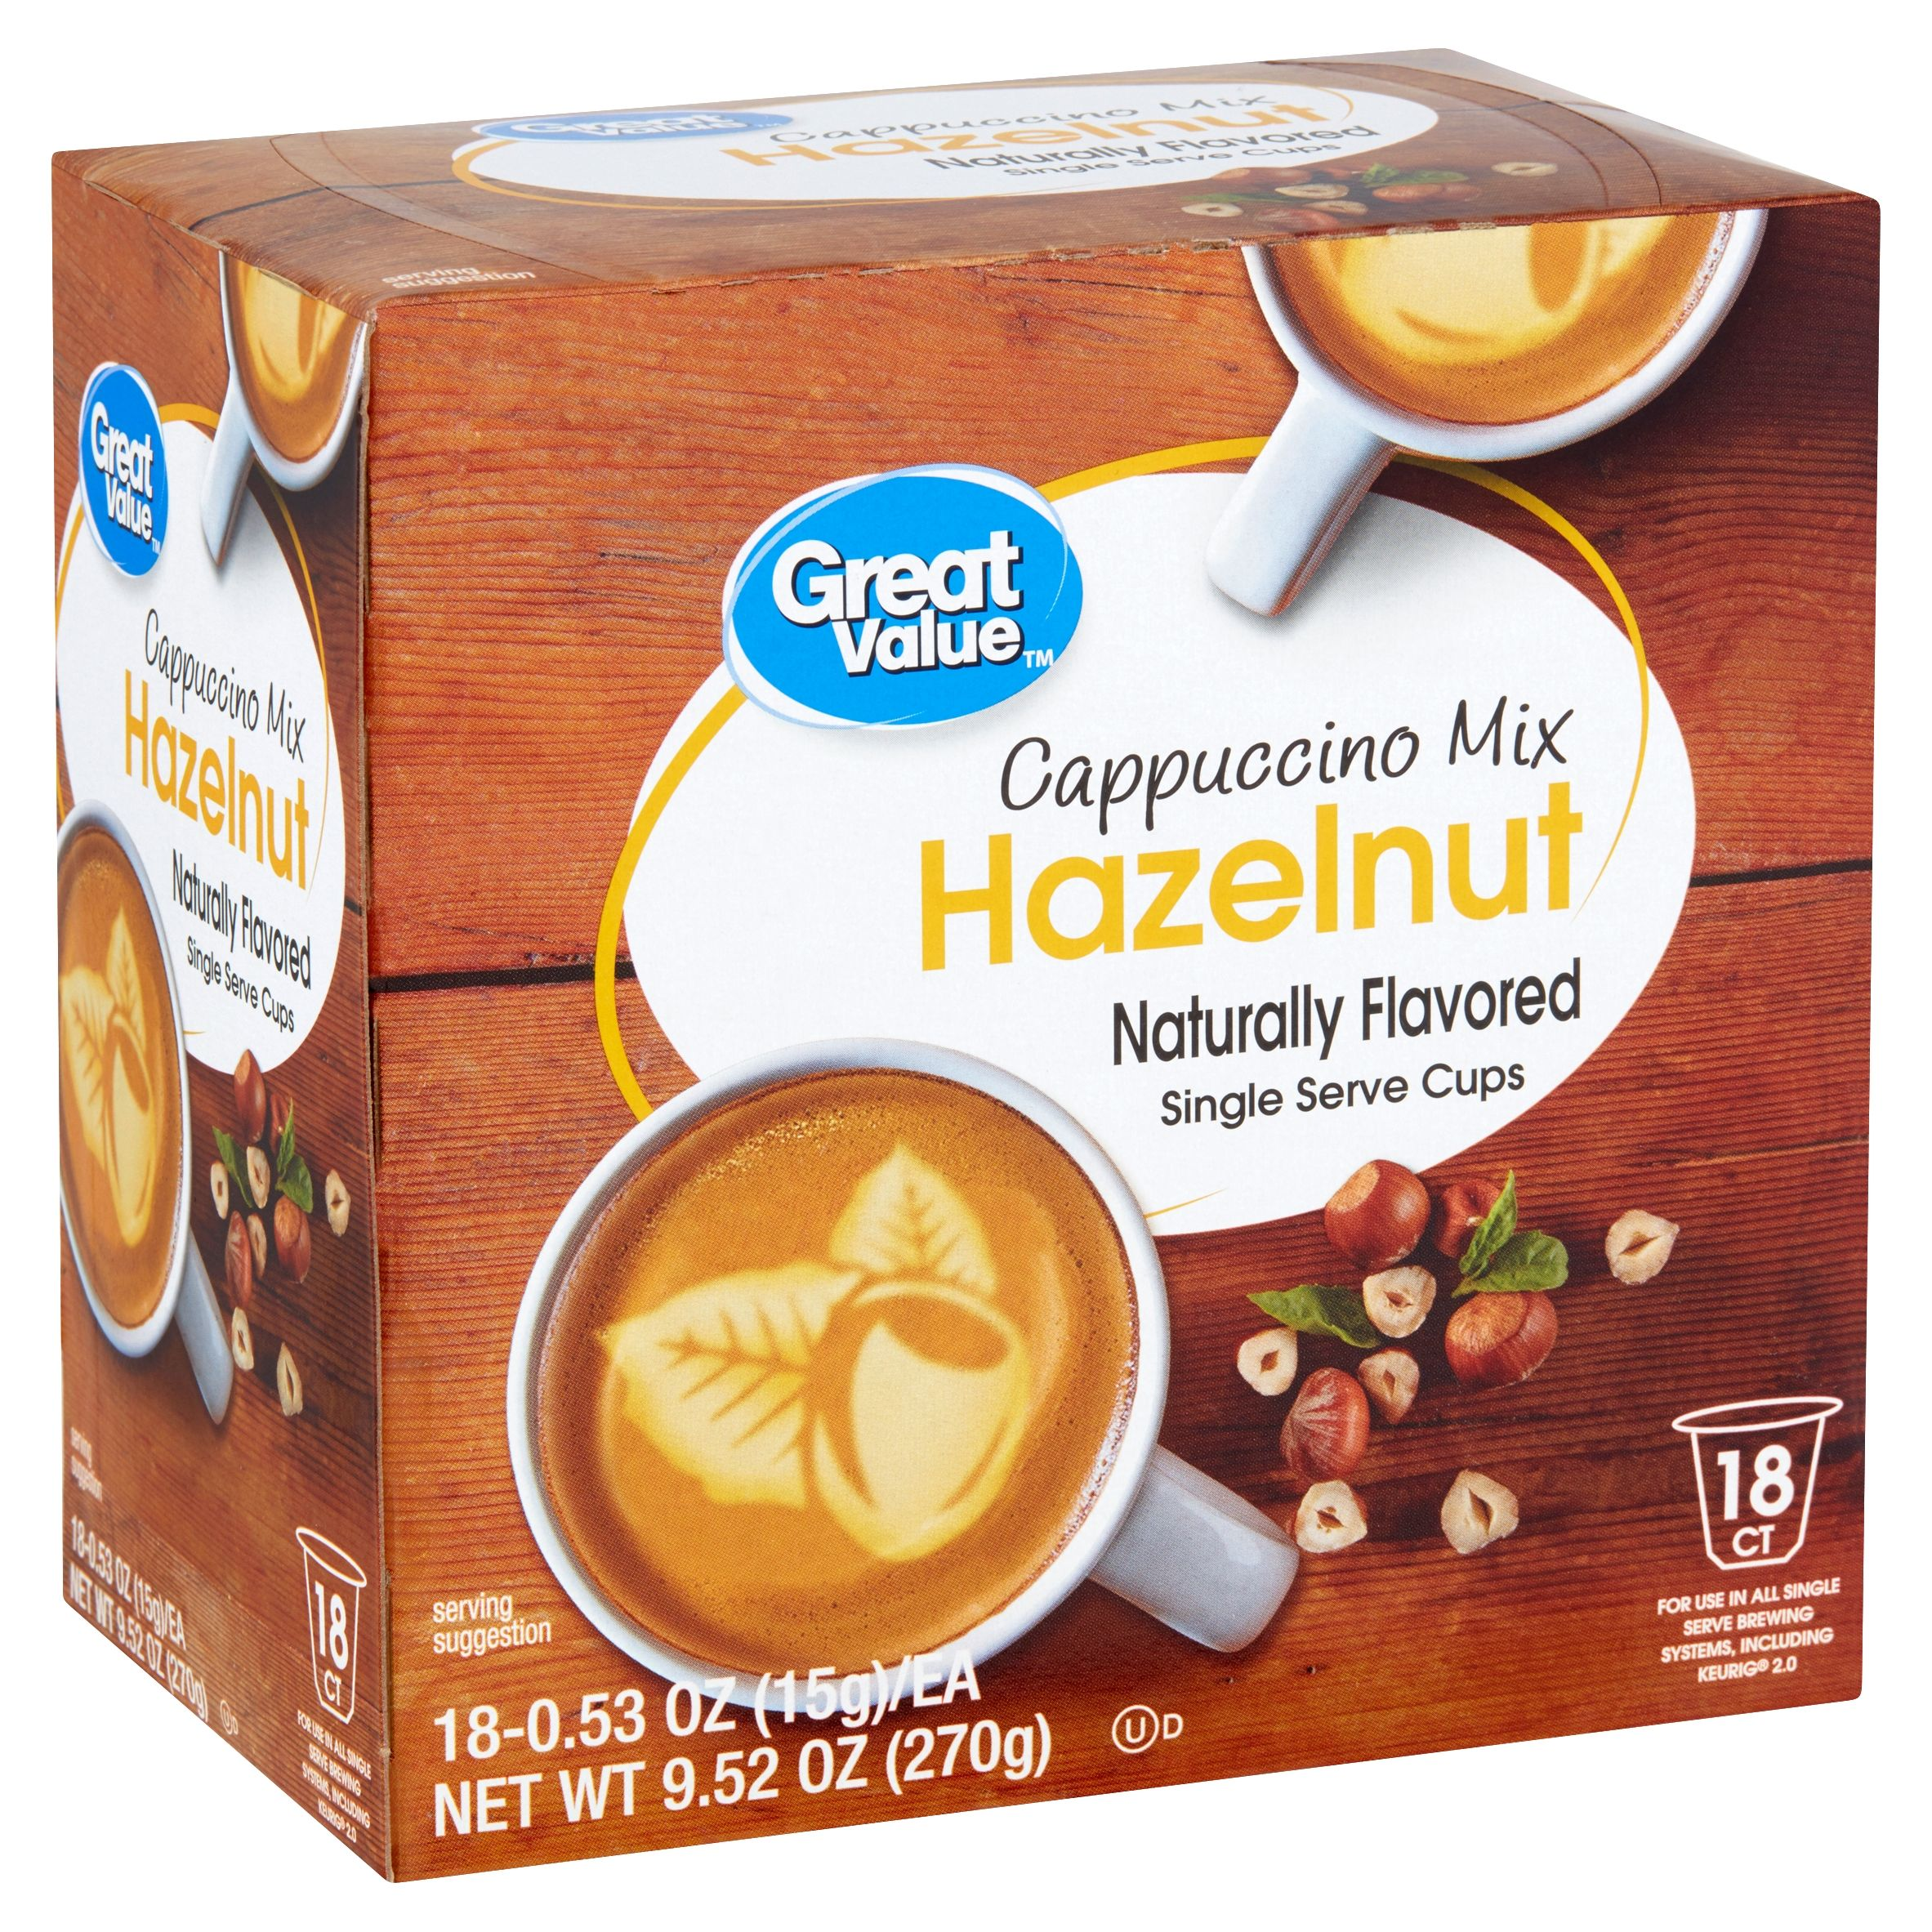 Great Value Hazelnut Cappuccino Mix, 18 Count